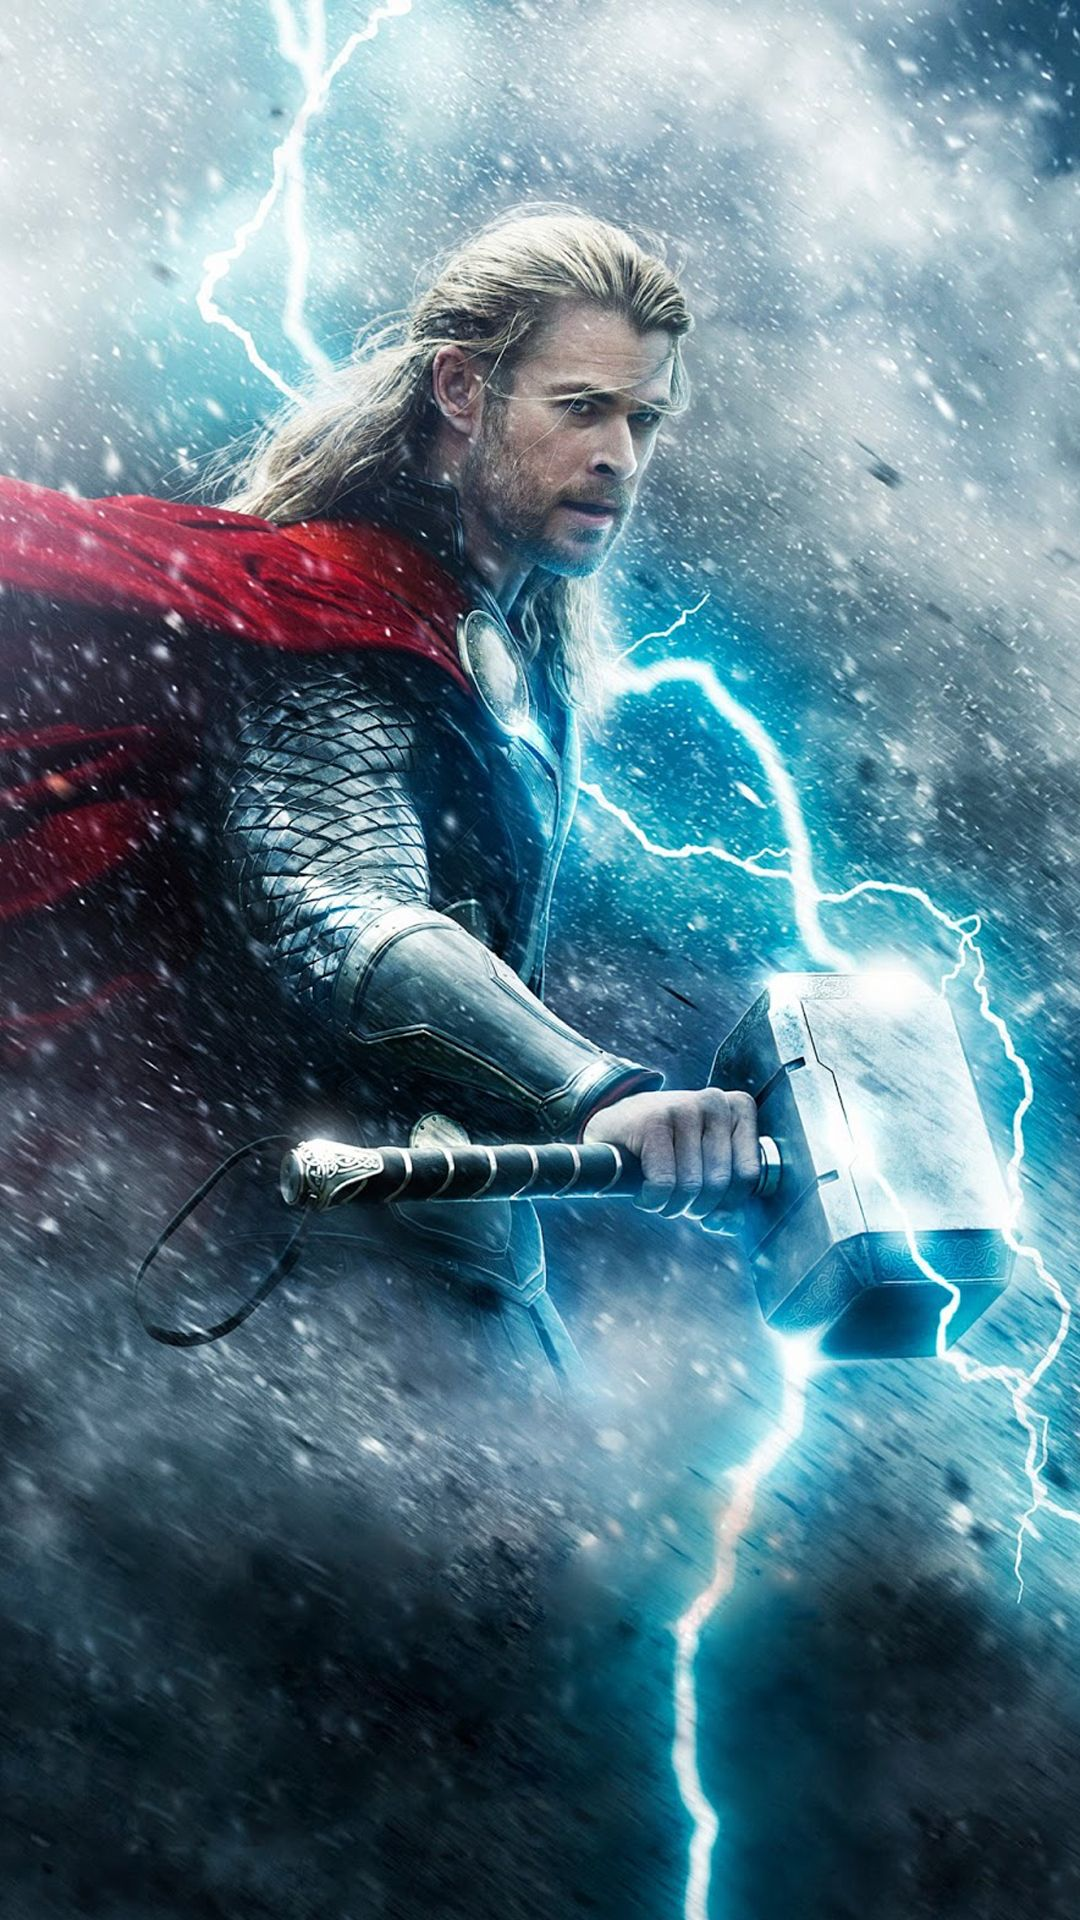 Thor with his hammer